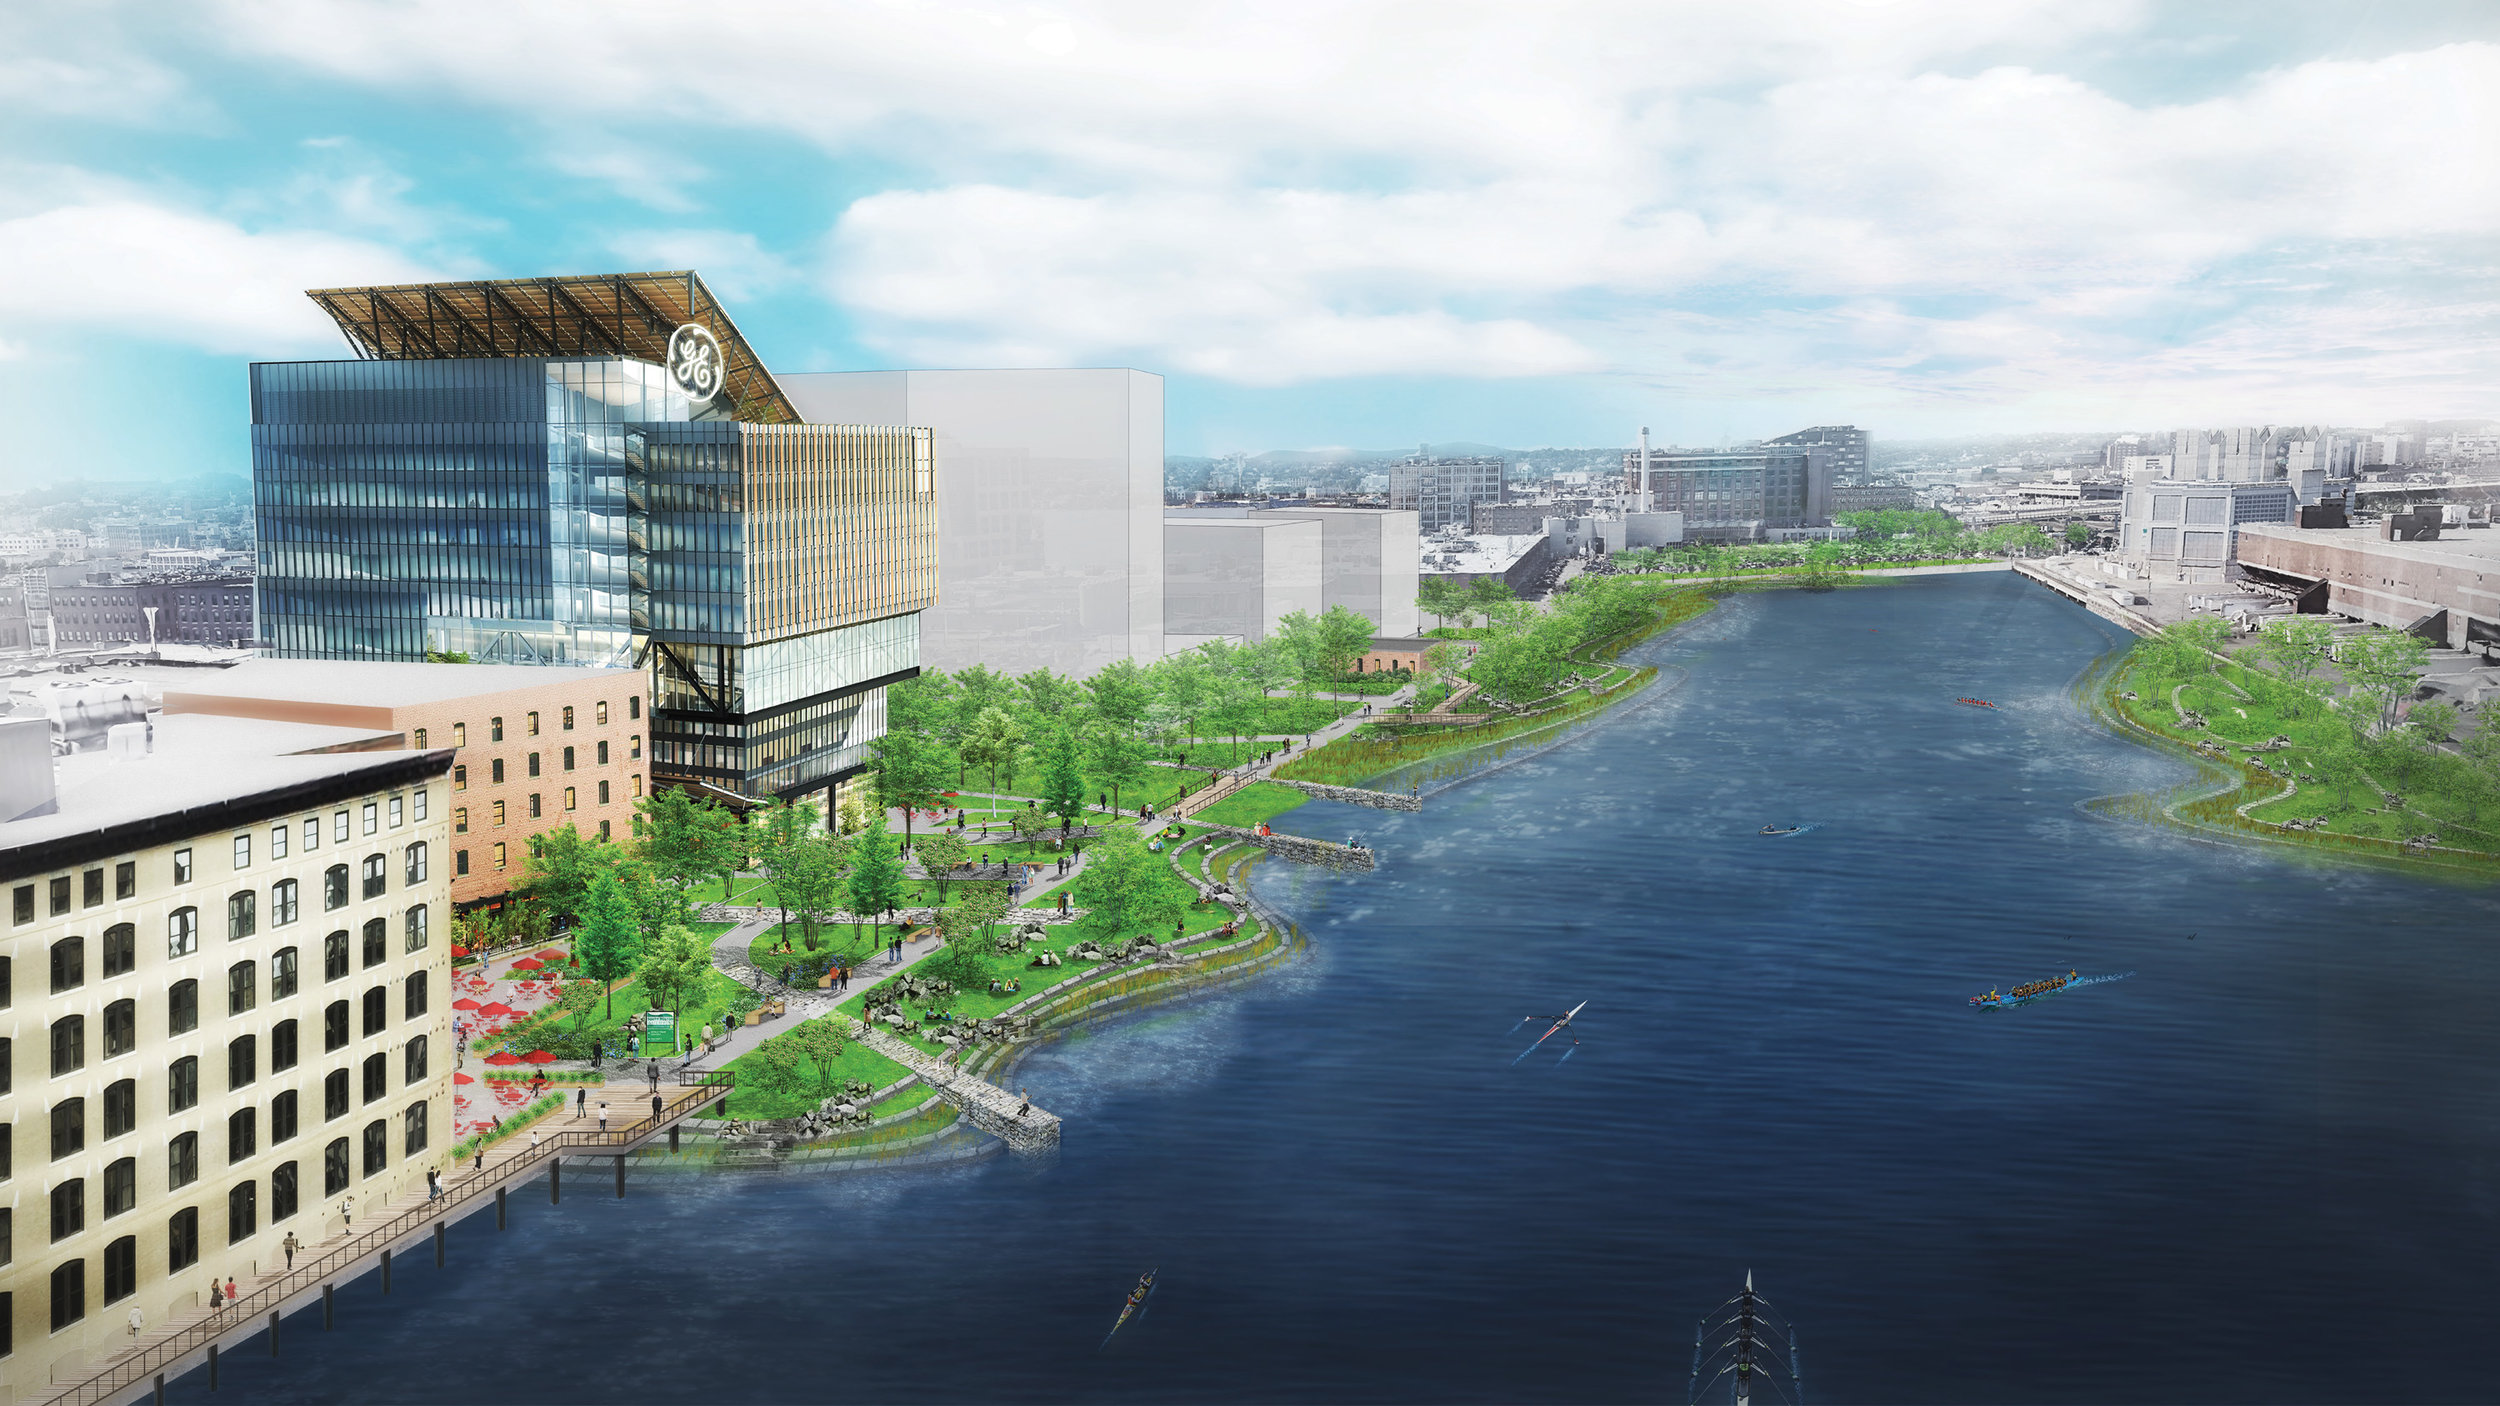 climate_ready_south_boston_coastal resilience solutions Fort Point Channel_012.jpg